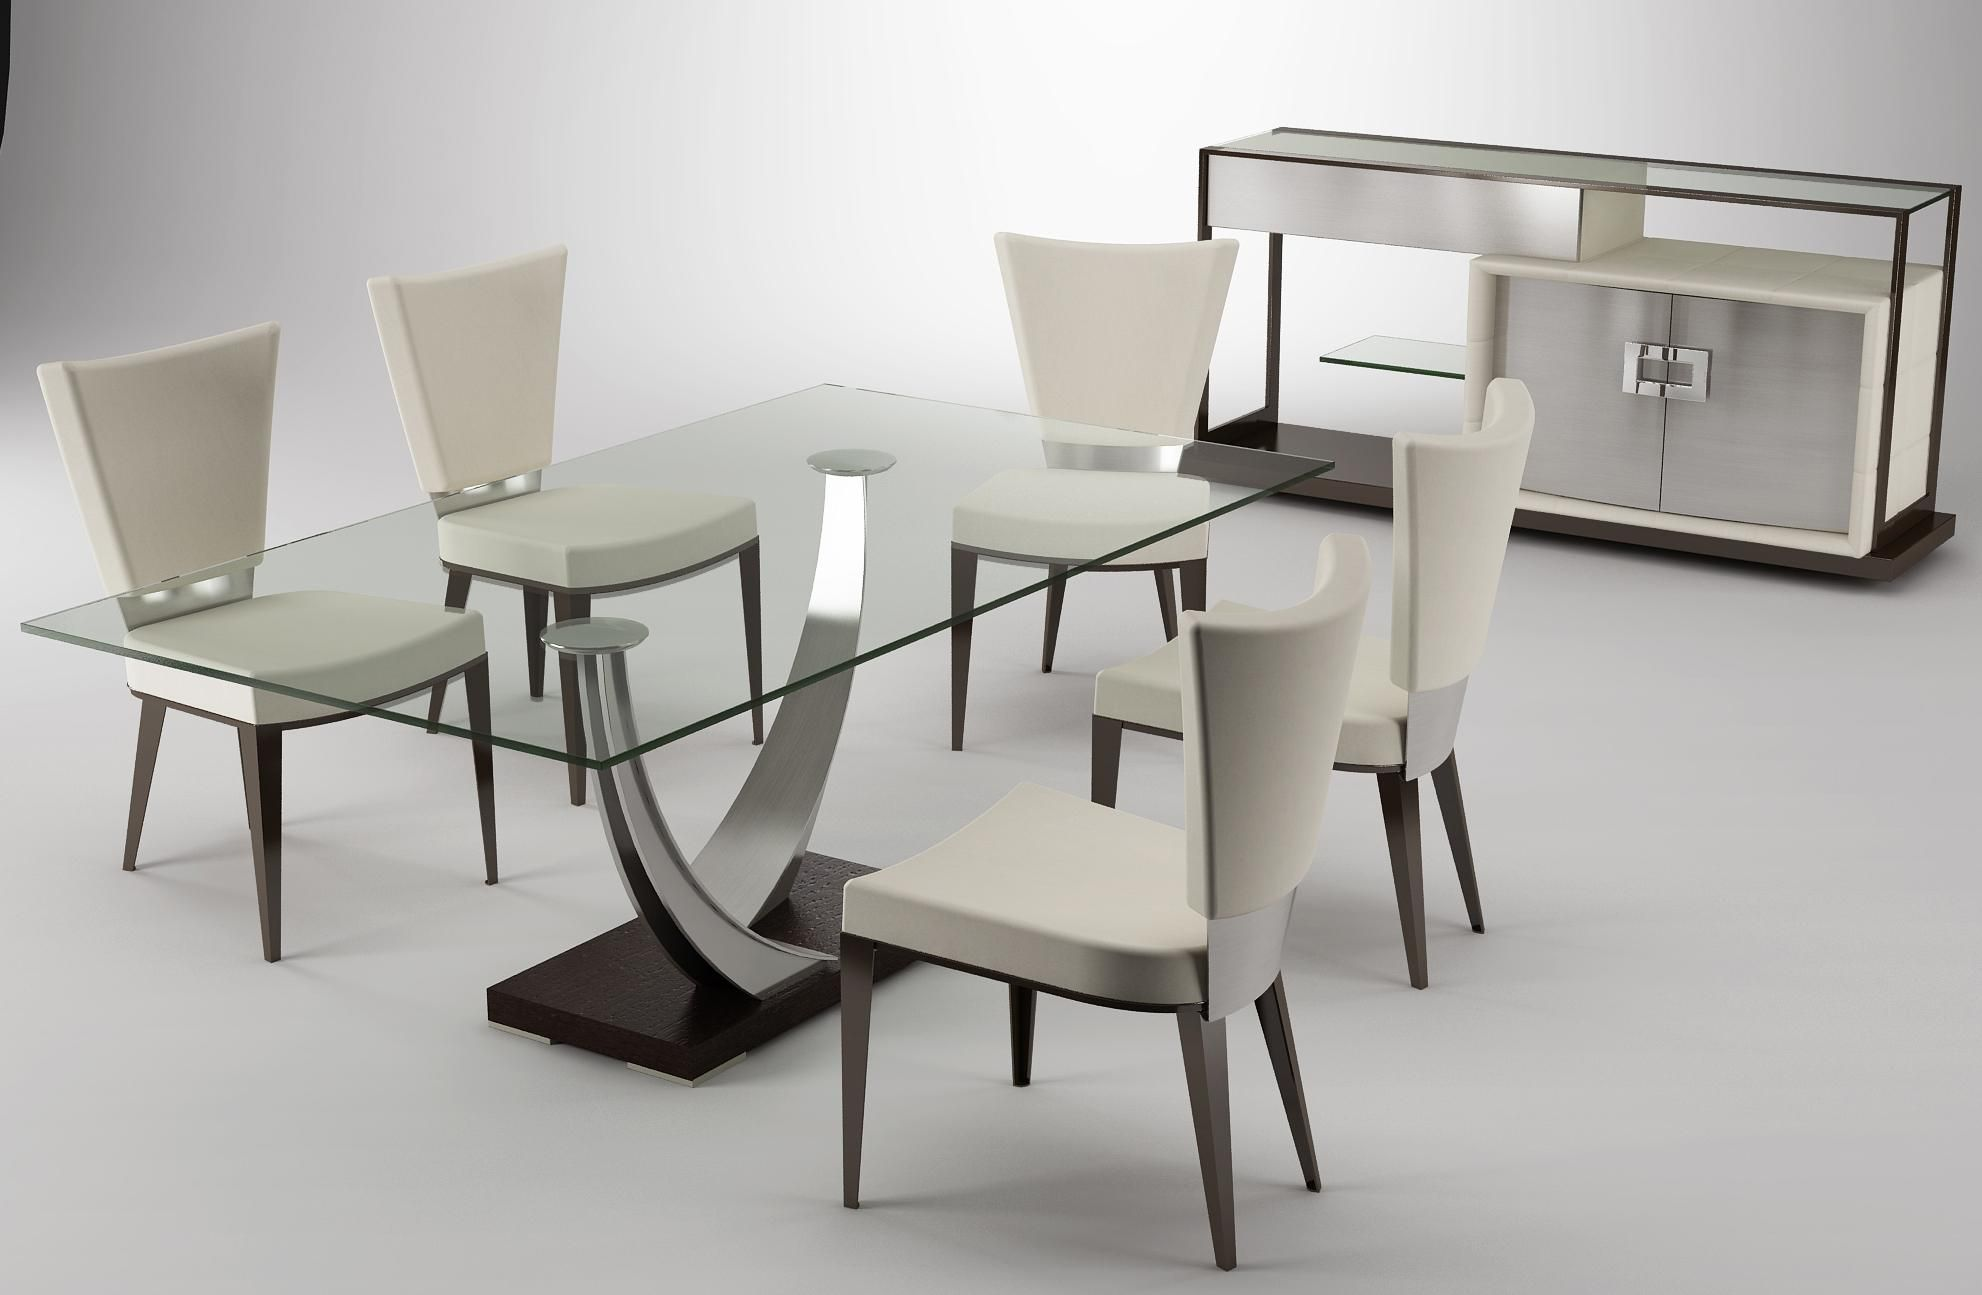 Amazing modern stylish dining room table set designs elite for Contemporary dining room furniture ideas